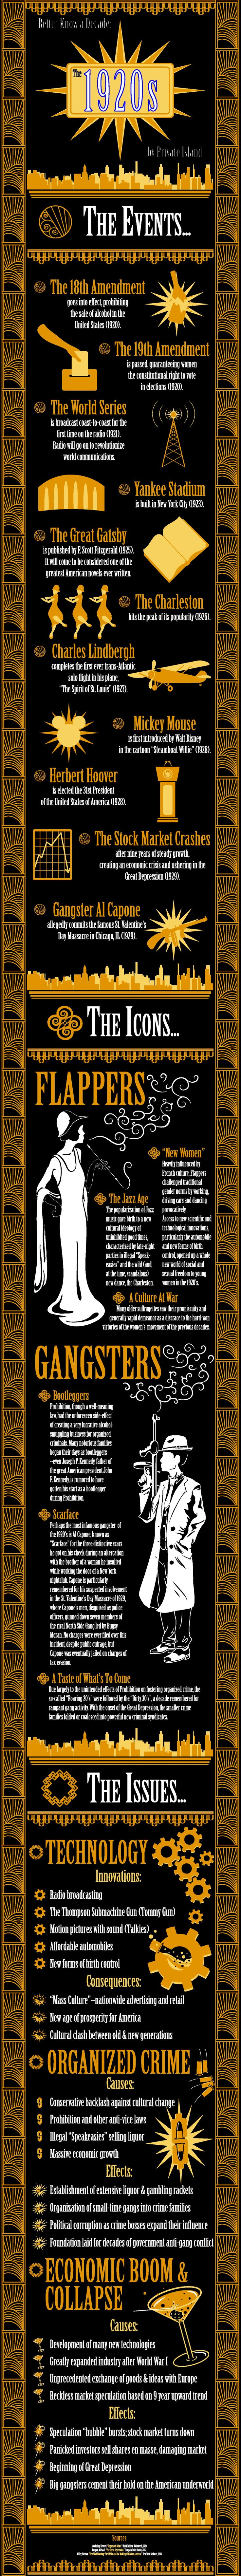 The Events of The Roaring 1920's Infographic